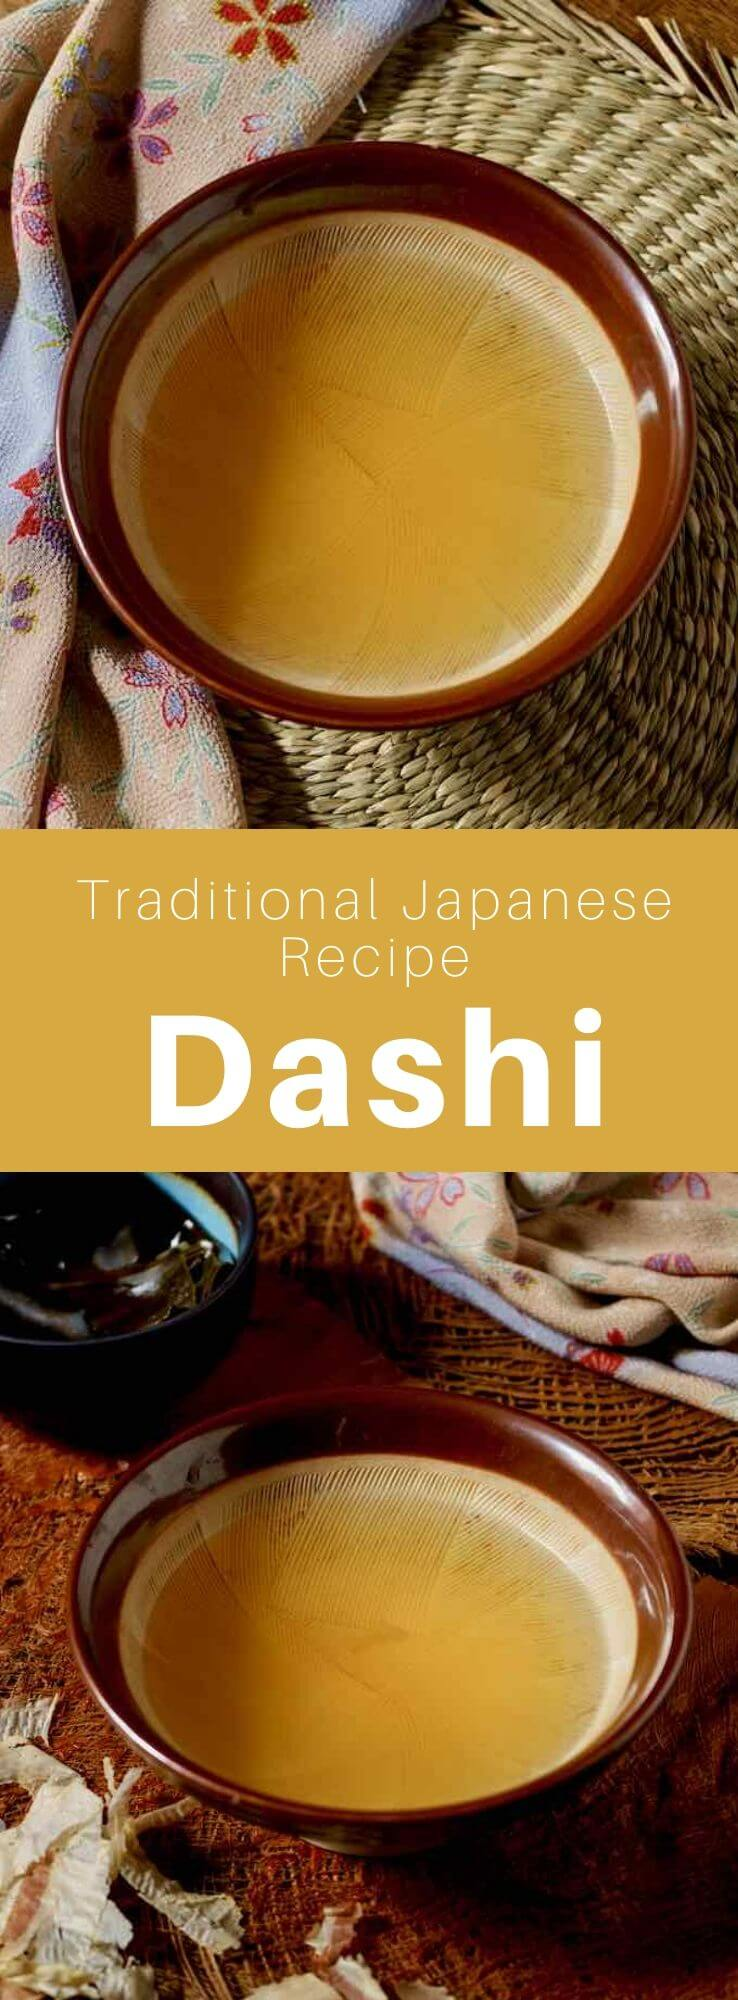 Dashi (出 汁) is a delicious broth of konbu seaweed and katsuobushi (dried bonito flakes) that is a staple in Japanese cuisine. #Japan #Japanese #JapaneseFood #JapaneseCuisine #JapaneseRecipe #AsianCuisine #AsianFood #AsianCuisine #WorldCuisine #196flavors